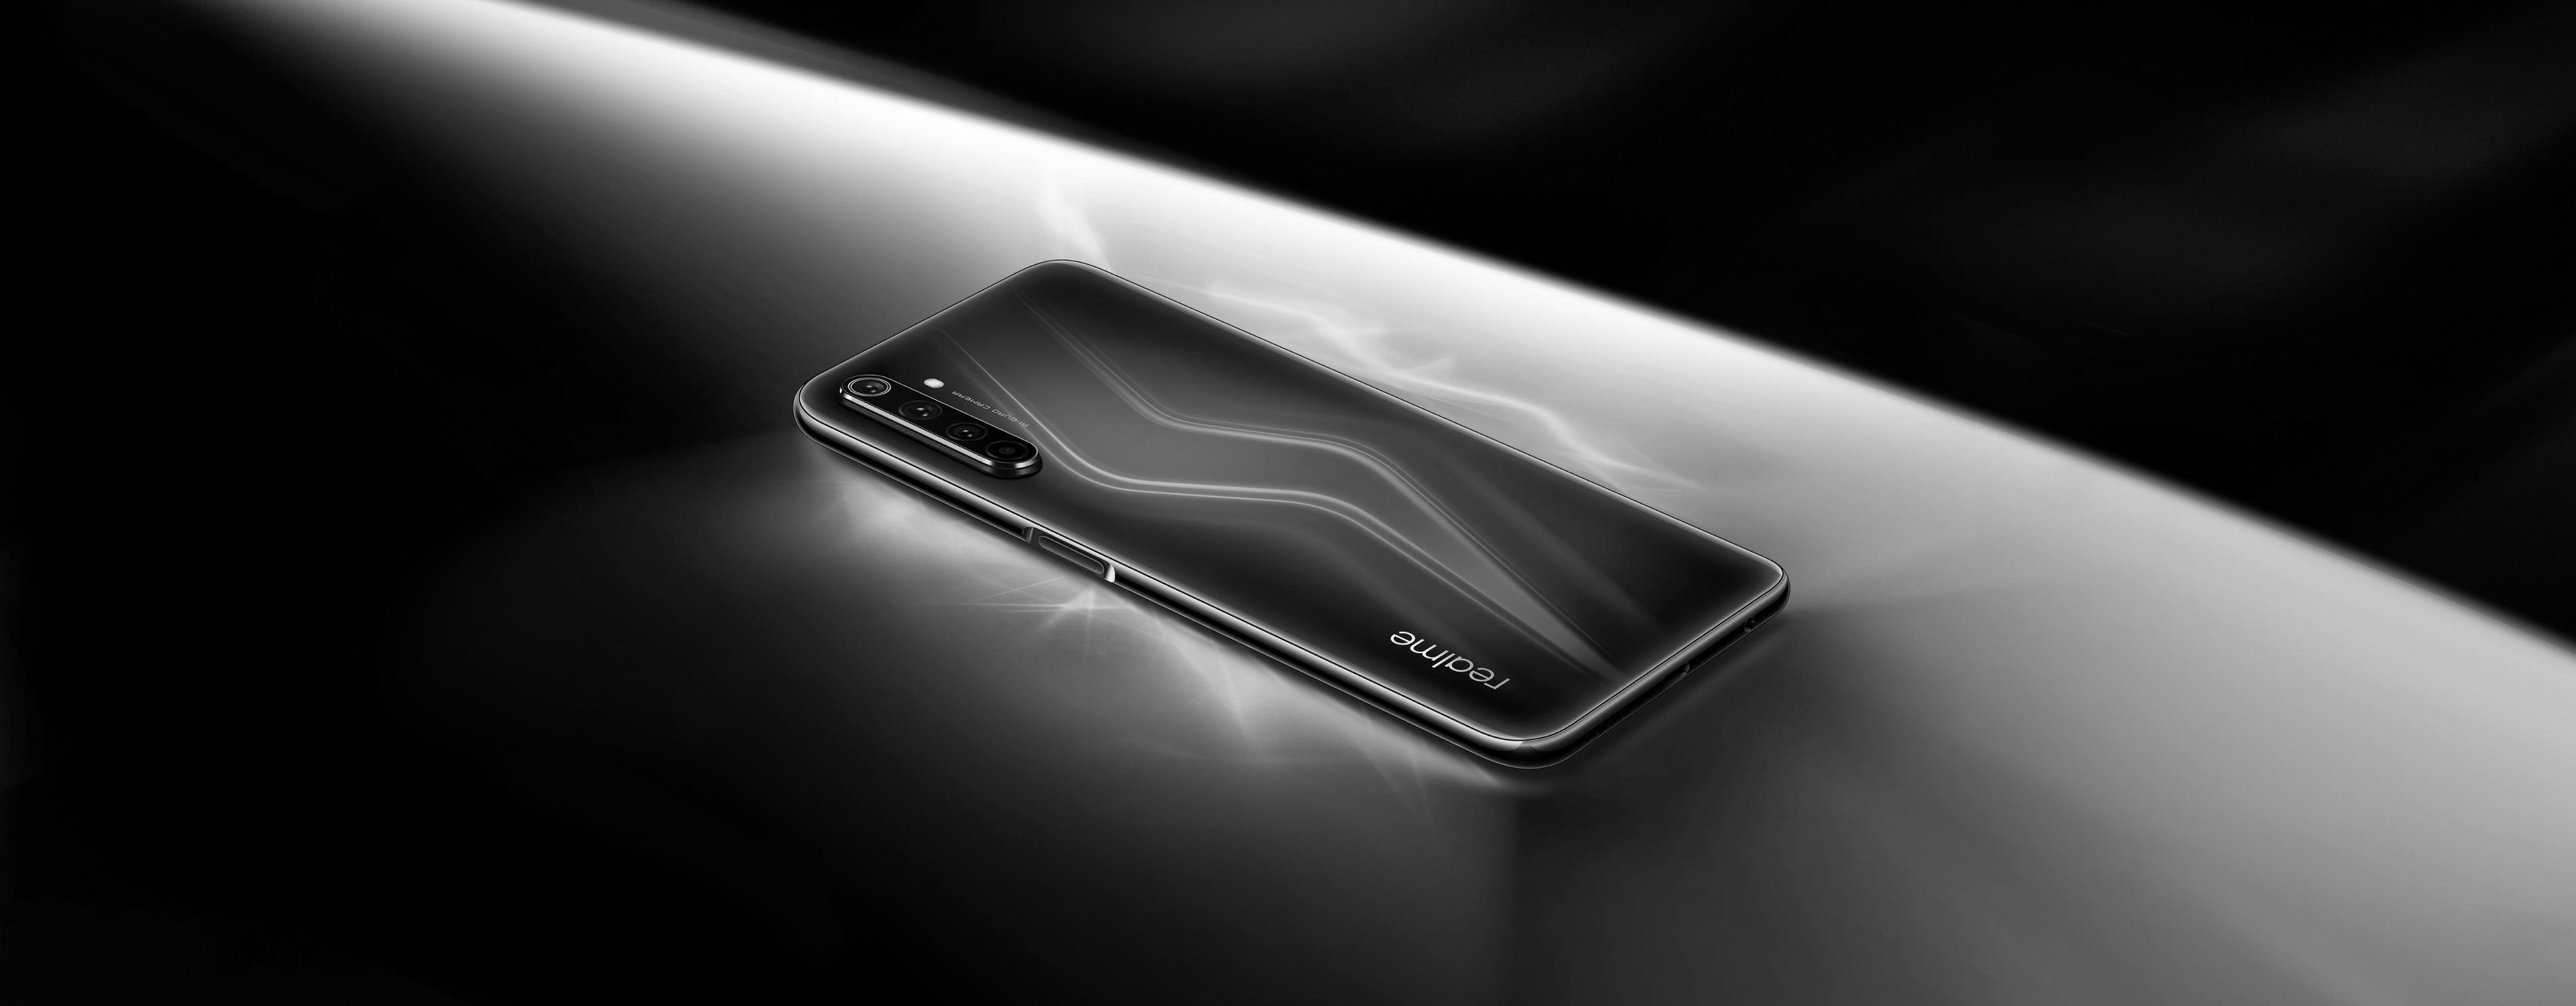 Realme 6 Pro goes on pre-orders in Europe, sale starting May 7